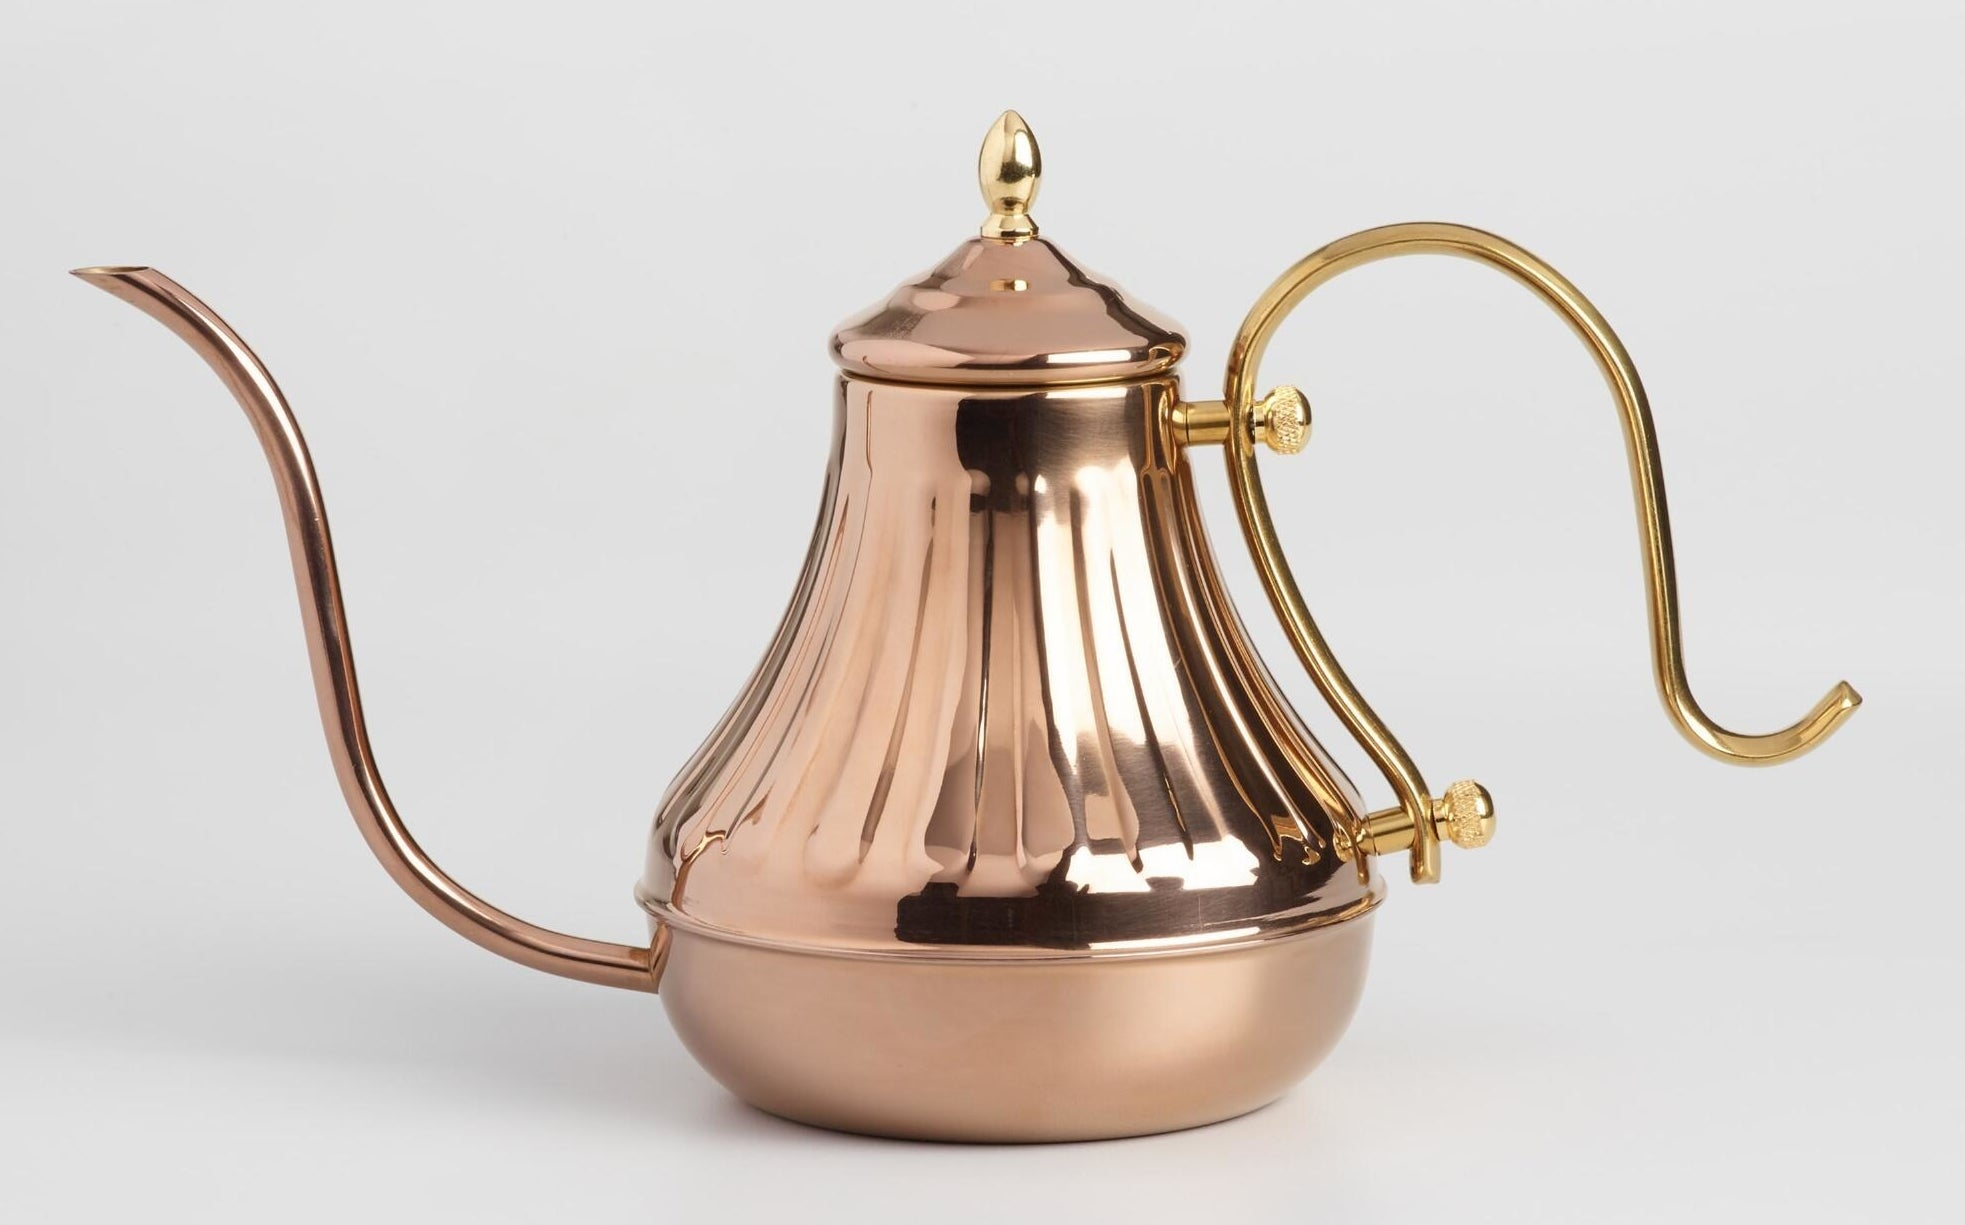 The copper kettle with a swoopy spout and handle in gold